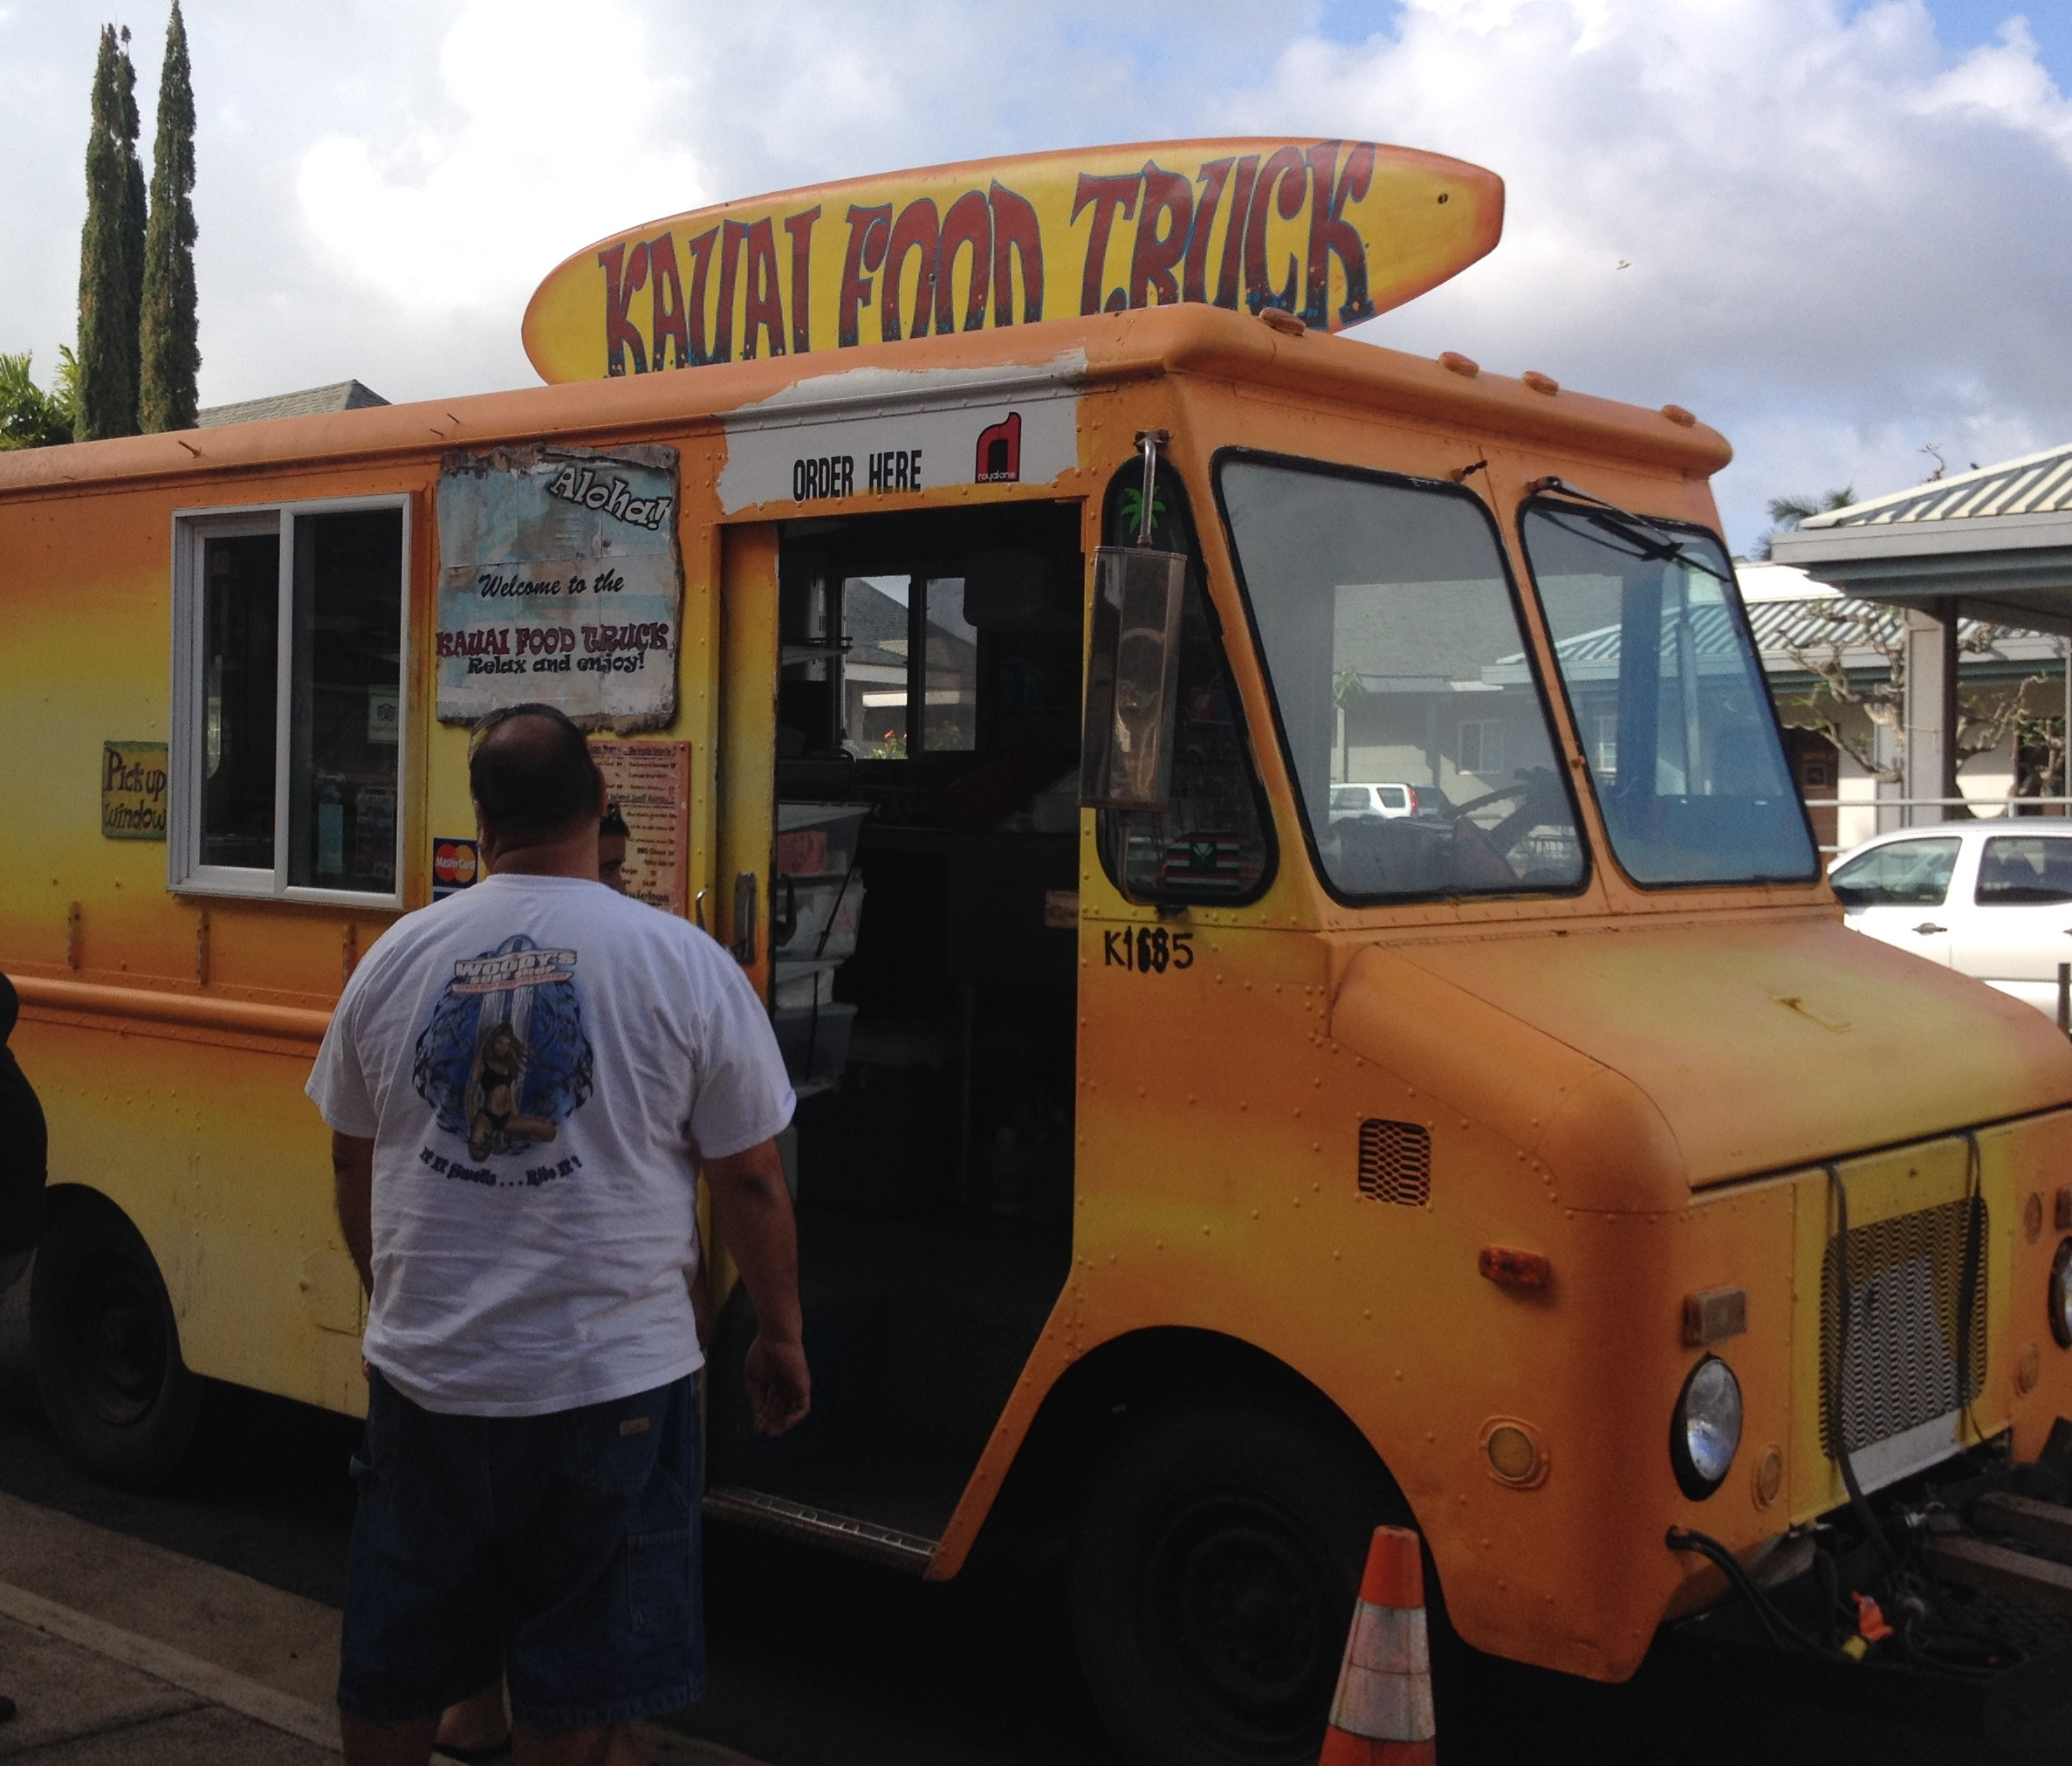 kauai food truck « 5 wheels to 5 star